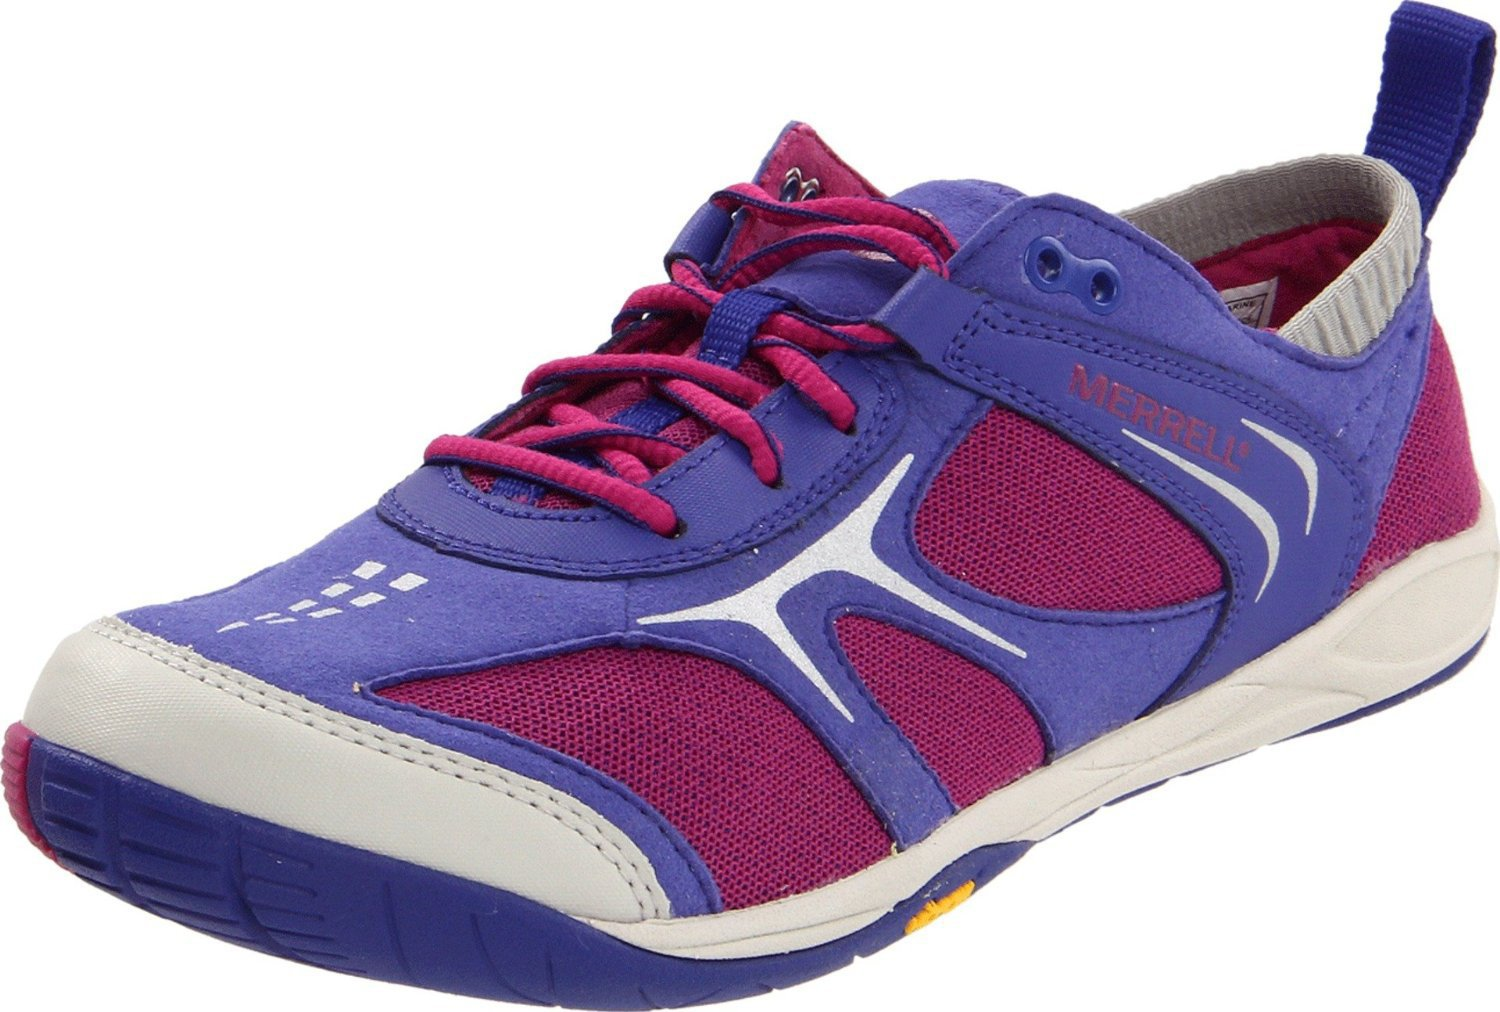 Merrell Women's Barefoot Dash Glove Running Shoe - designer shoes, handbags, jewelry, watches, and fashion accessories | endless.com